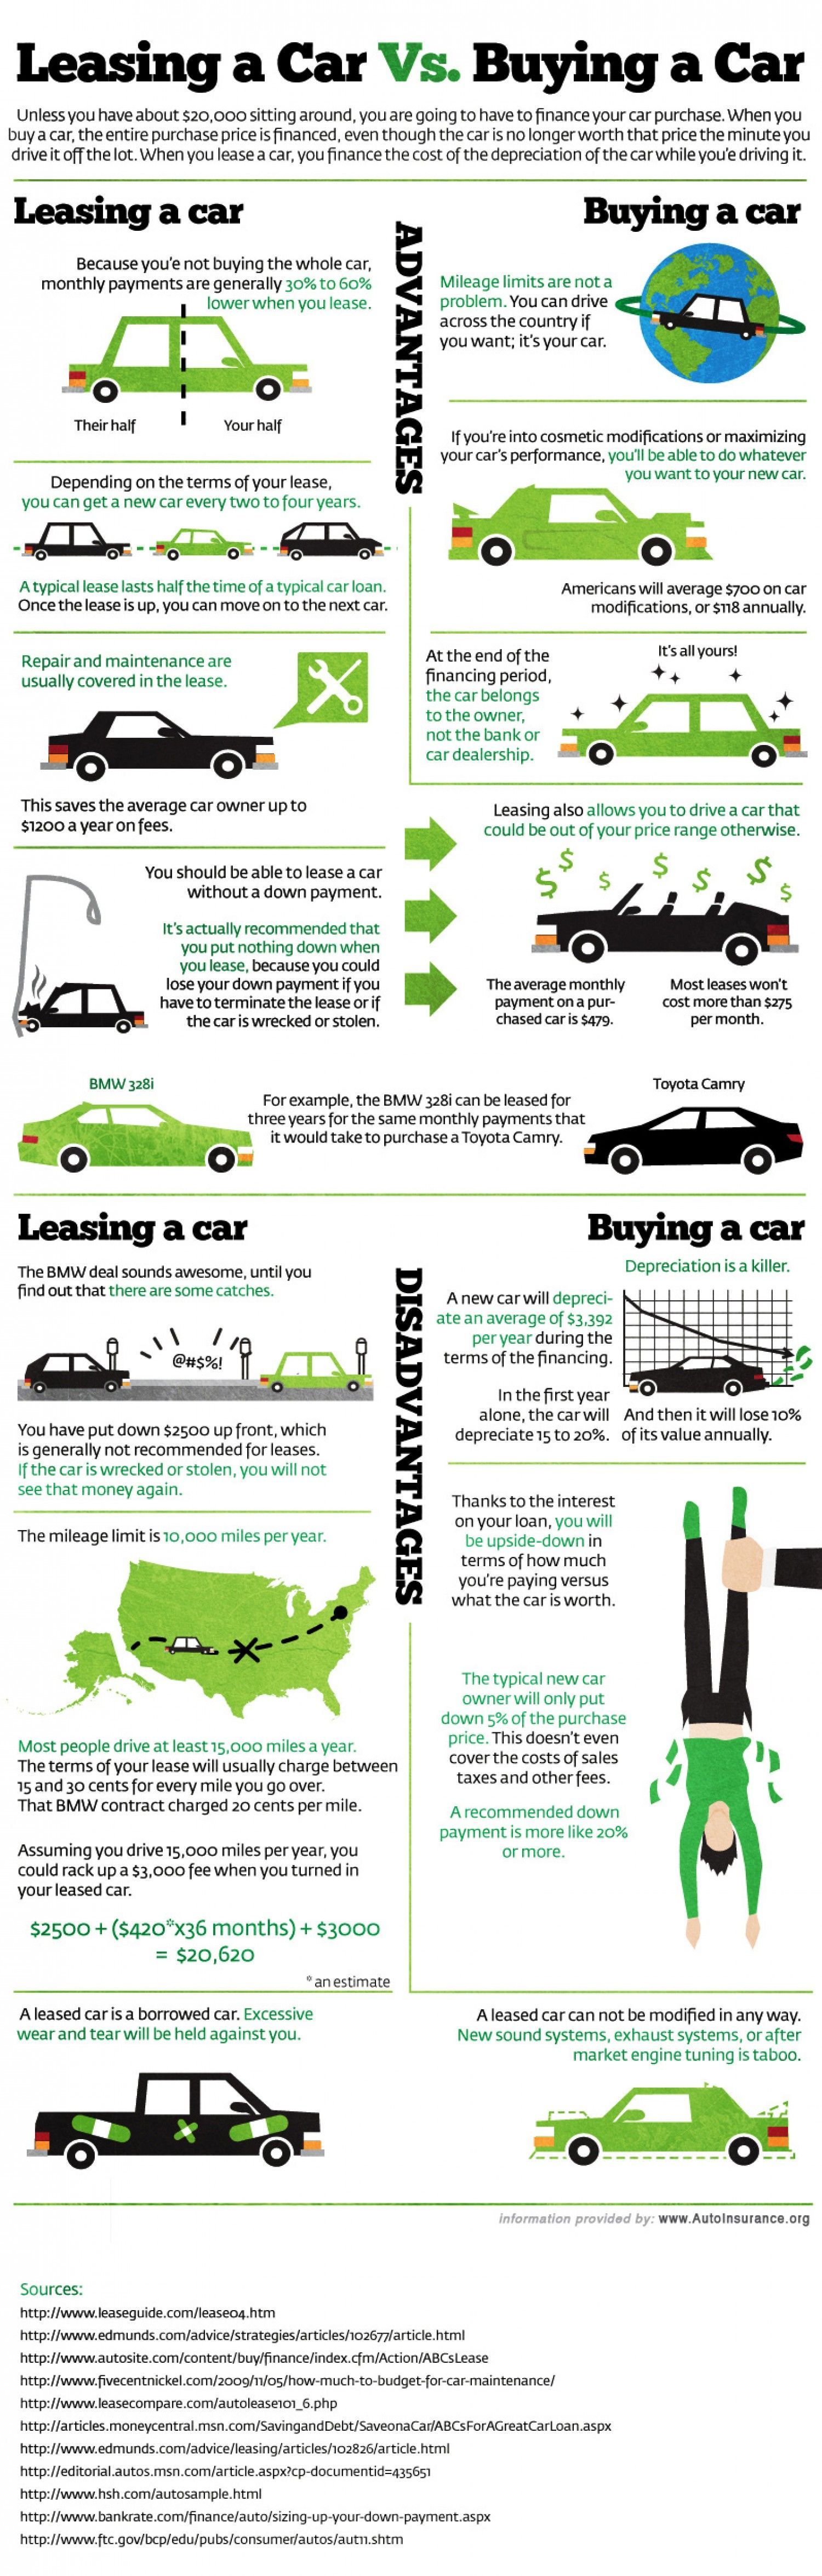 Classic pros and cons comparison for Leasing vs. Buying a Car ...